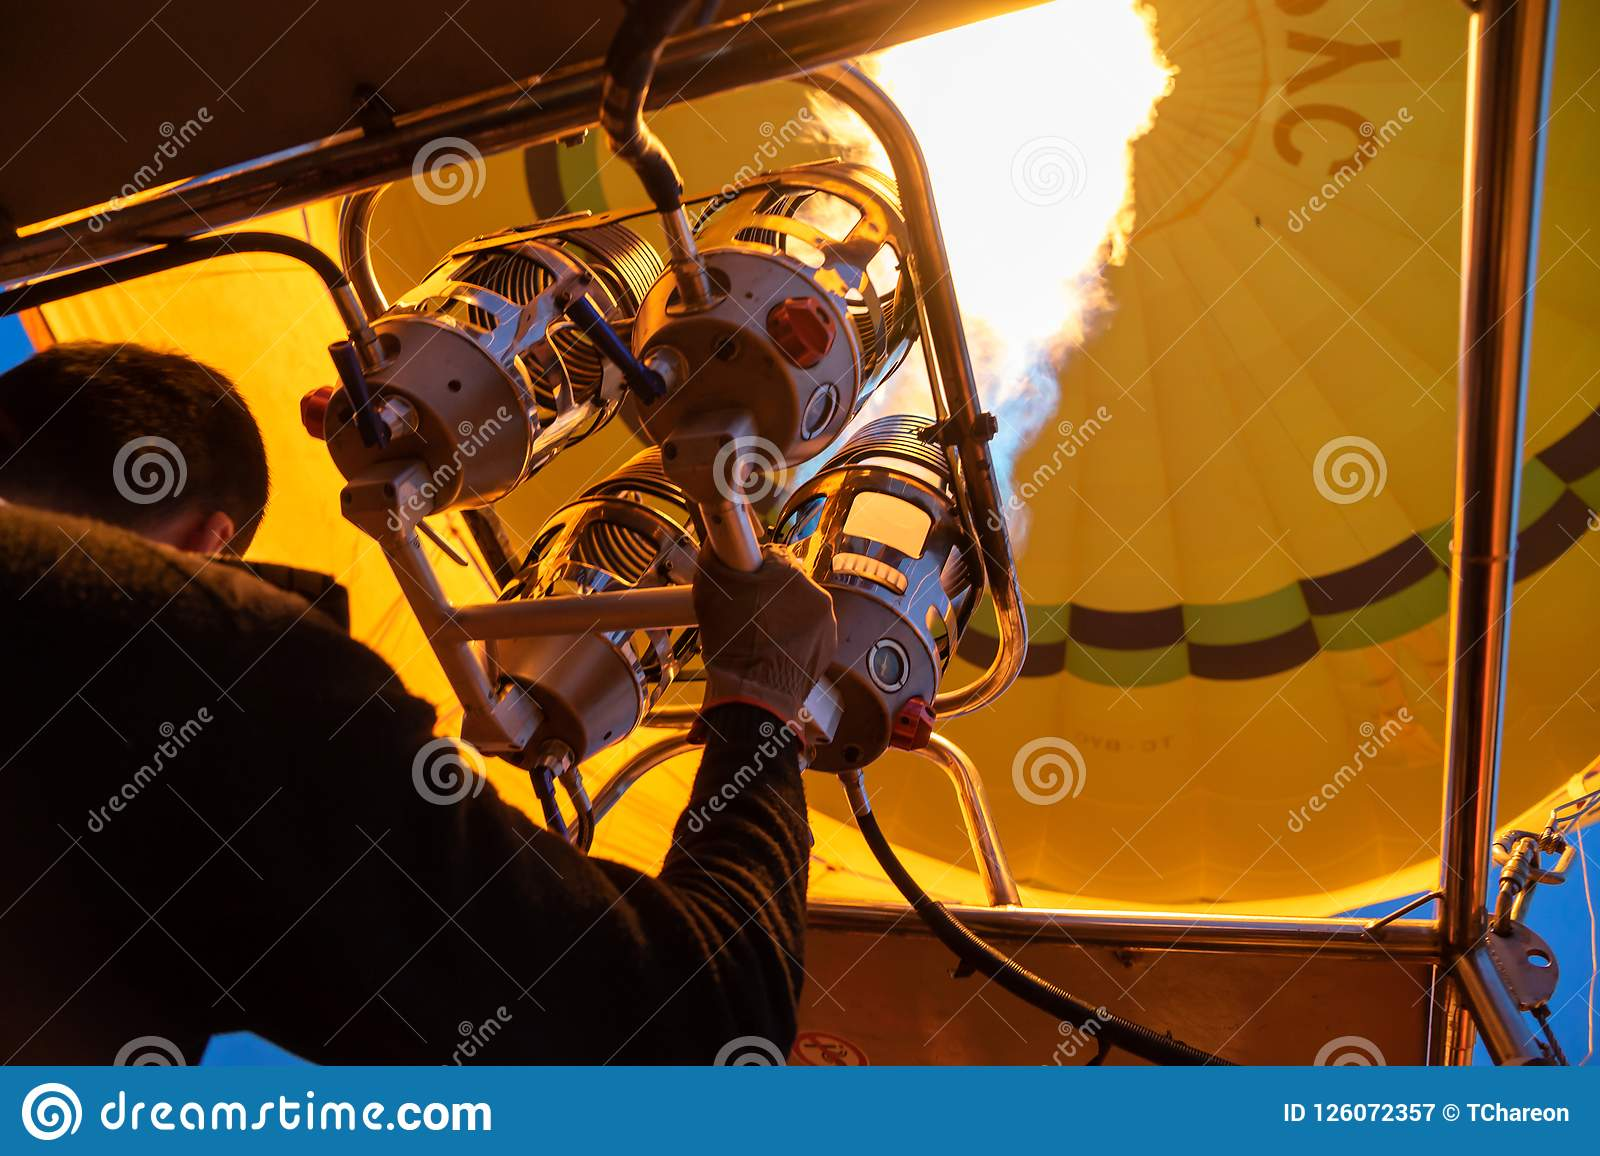 Bright yellow hot air balloon flying with gas fire flame heat equipment by pilot over Cappadocia, low angle view from inside